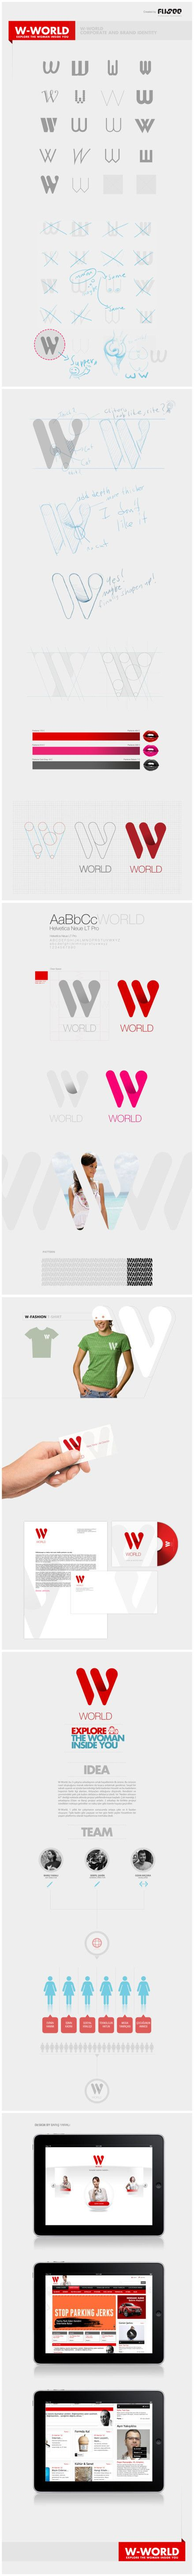 W-WORLD #identity #branding #marketing